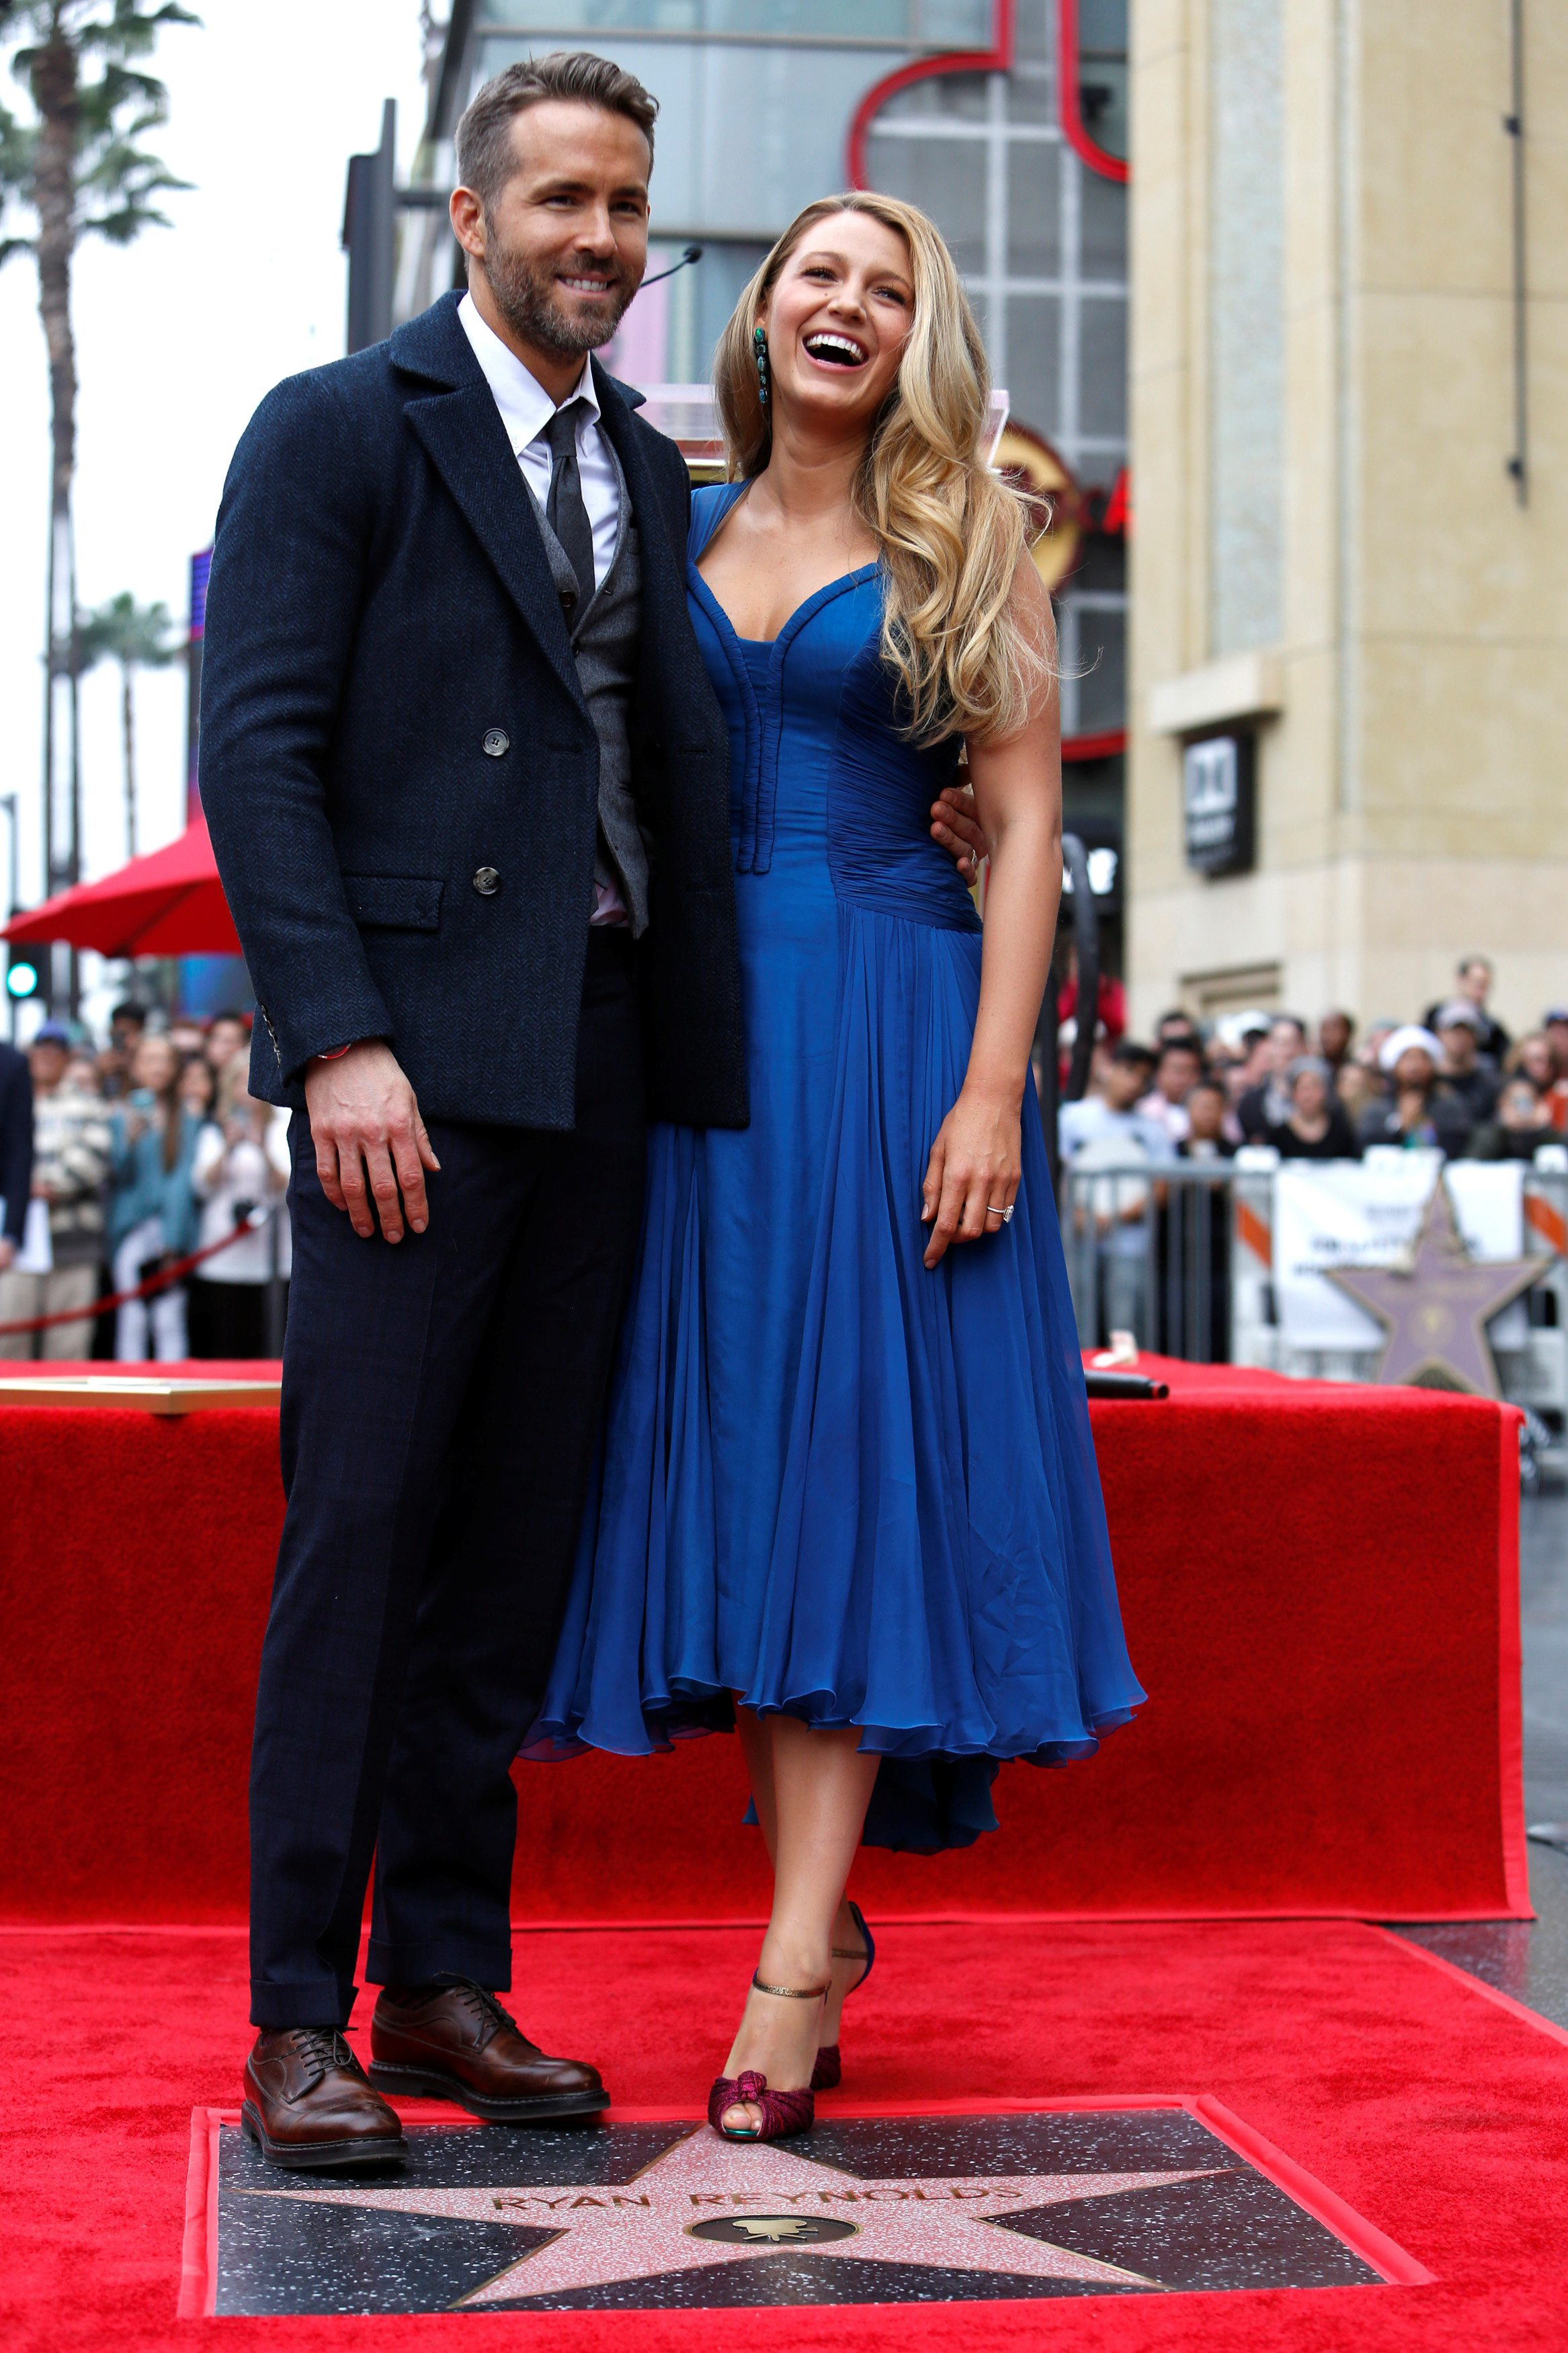 Actor Ryan Reynolds poses with his wife Blake Lively after unveiling his star on the Hollywood Walk of Fame in Hollywood, California U.S., December 15, 2016.   REUTERS/Mario Anzuoni